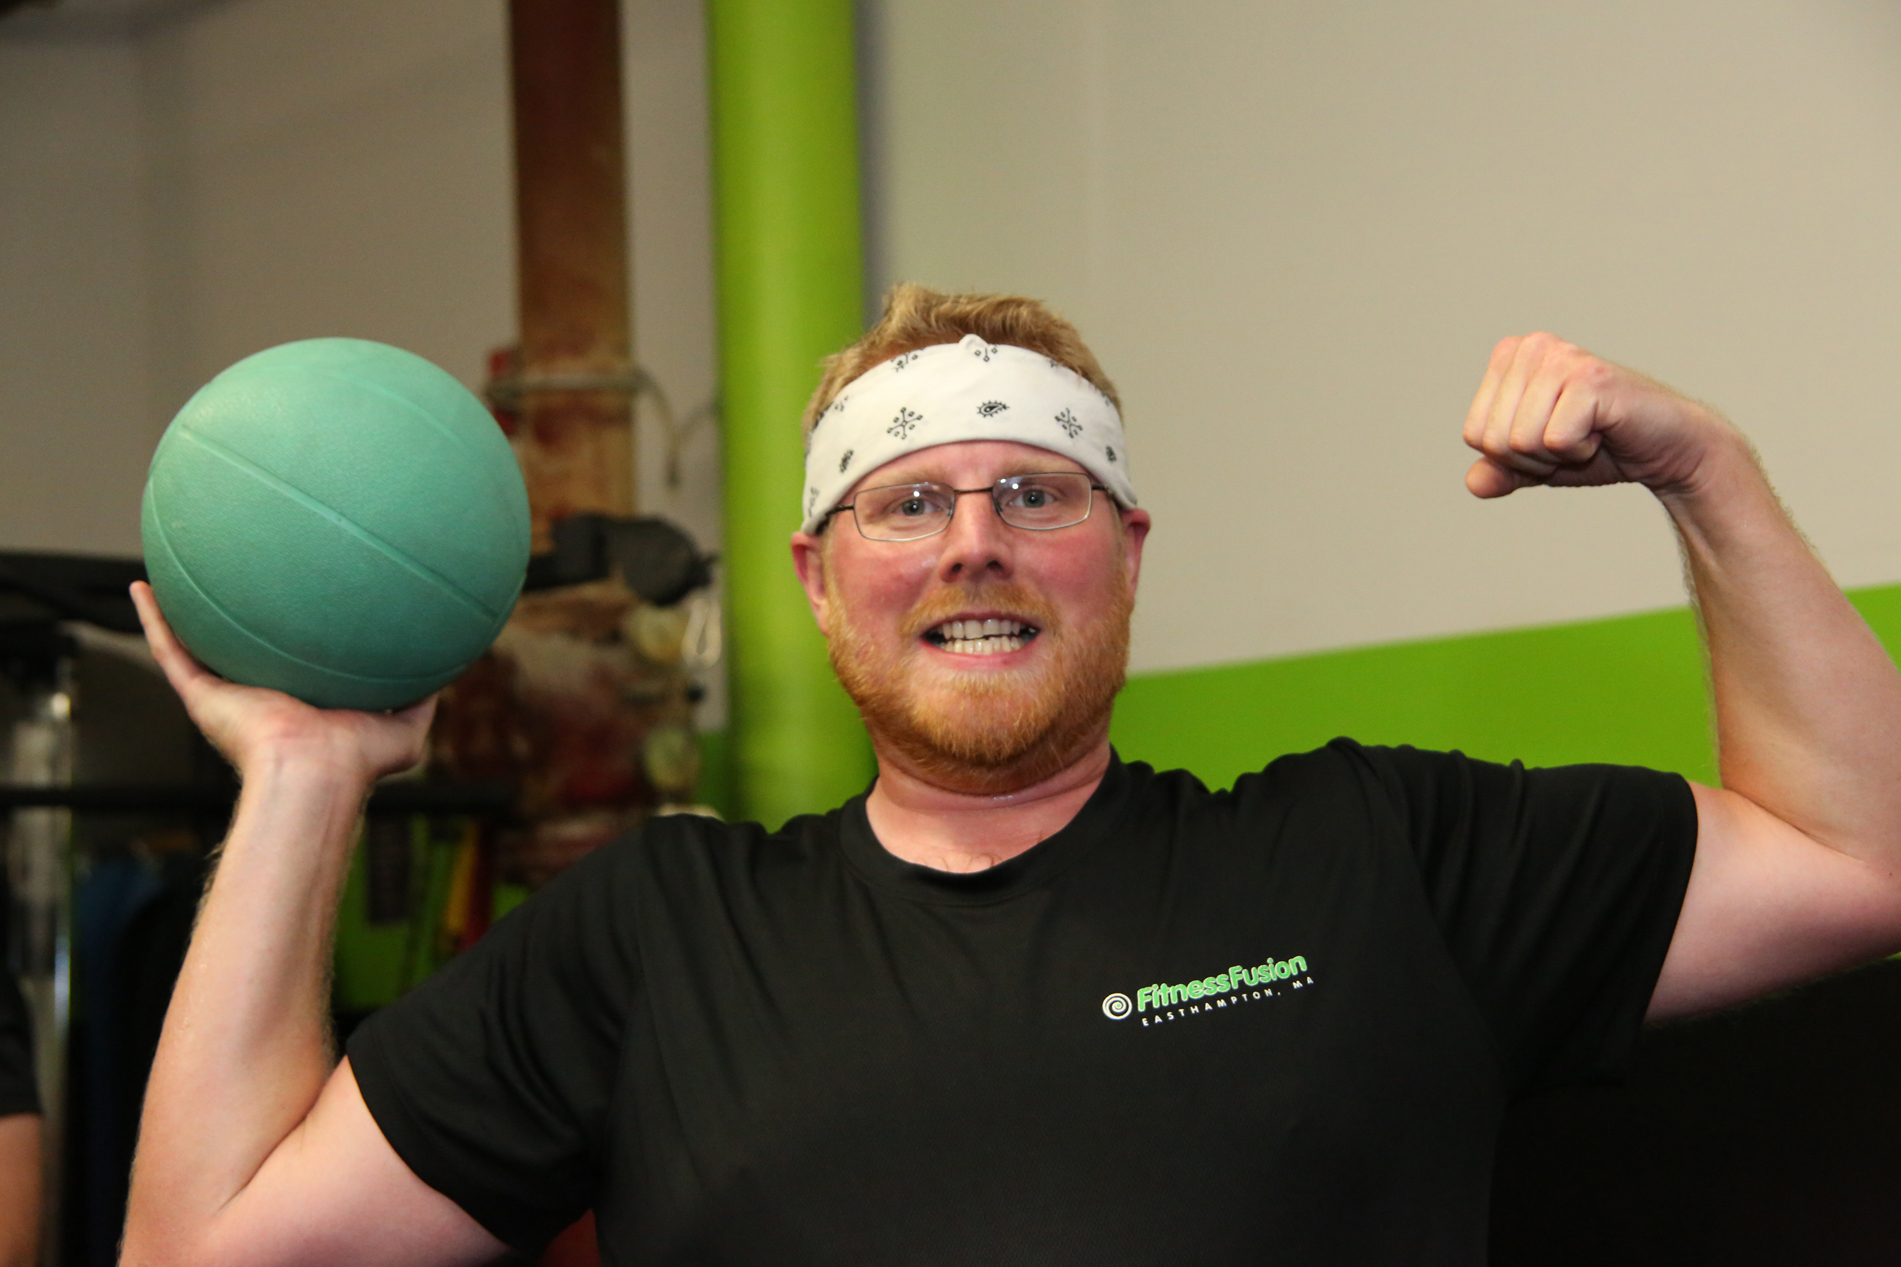 northampton_ma_area_group_fitness_and_gym_training_client_mike_2.JPG